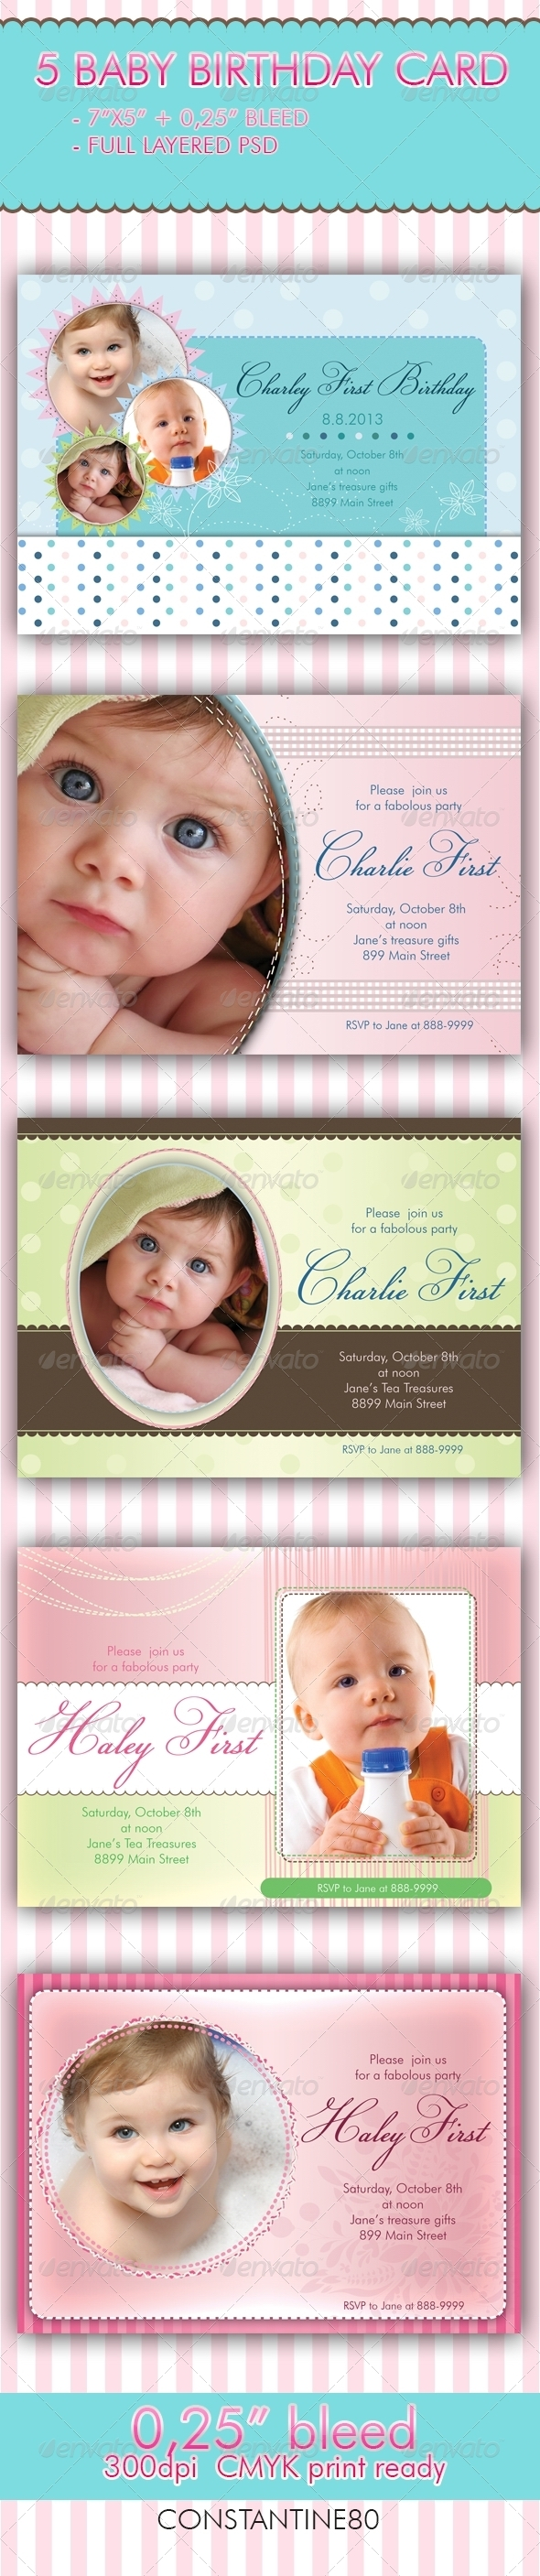 5 Baby Birthday Card - Invitations Cards & Invites